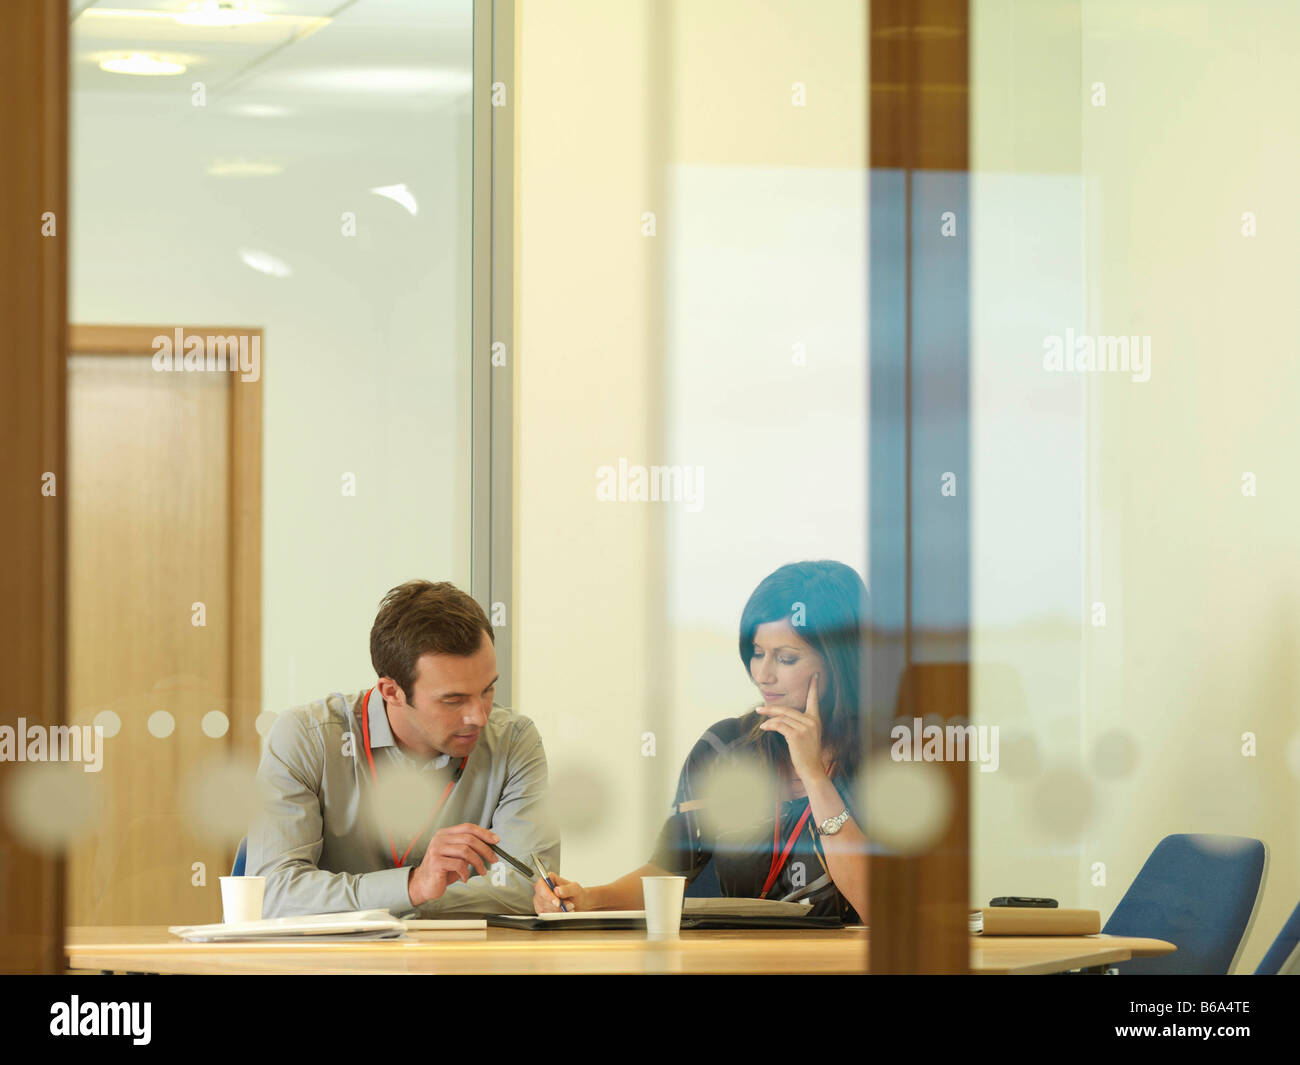 Office staff in meeting - Stock Image